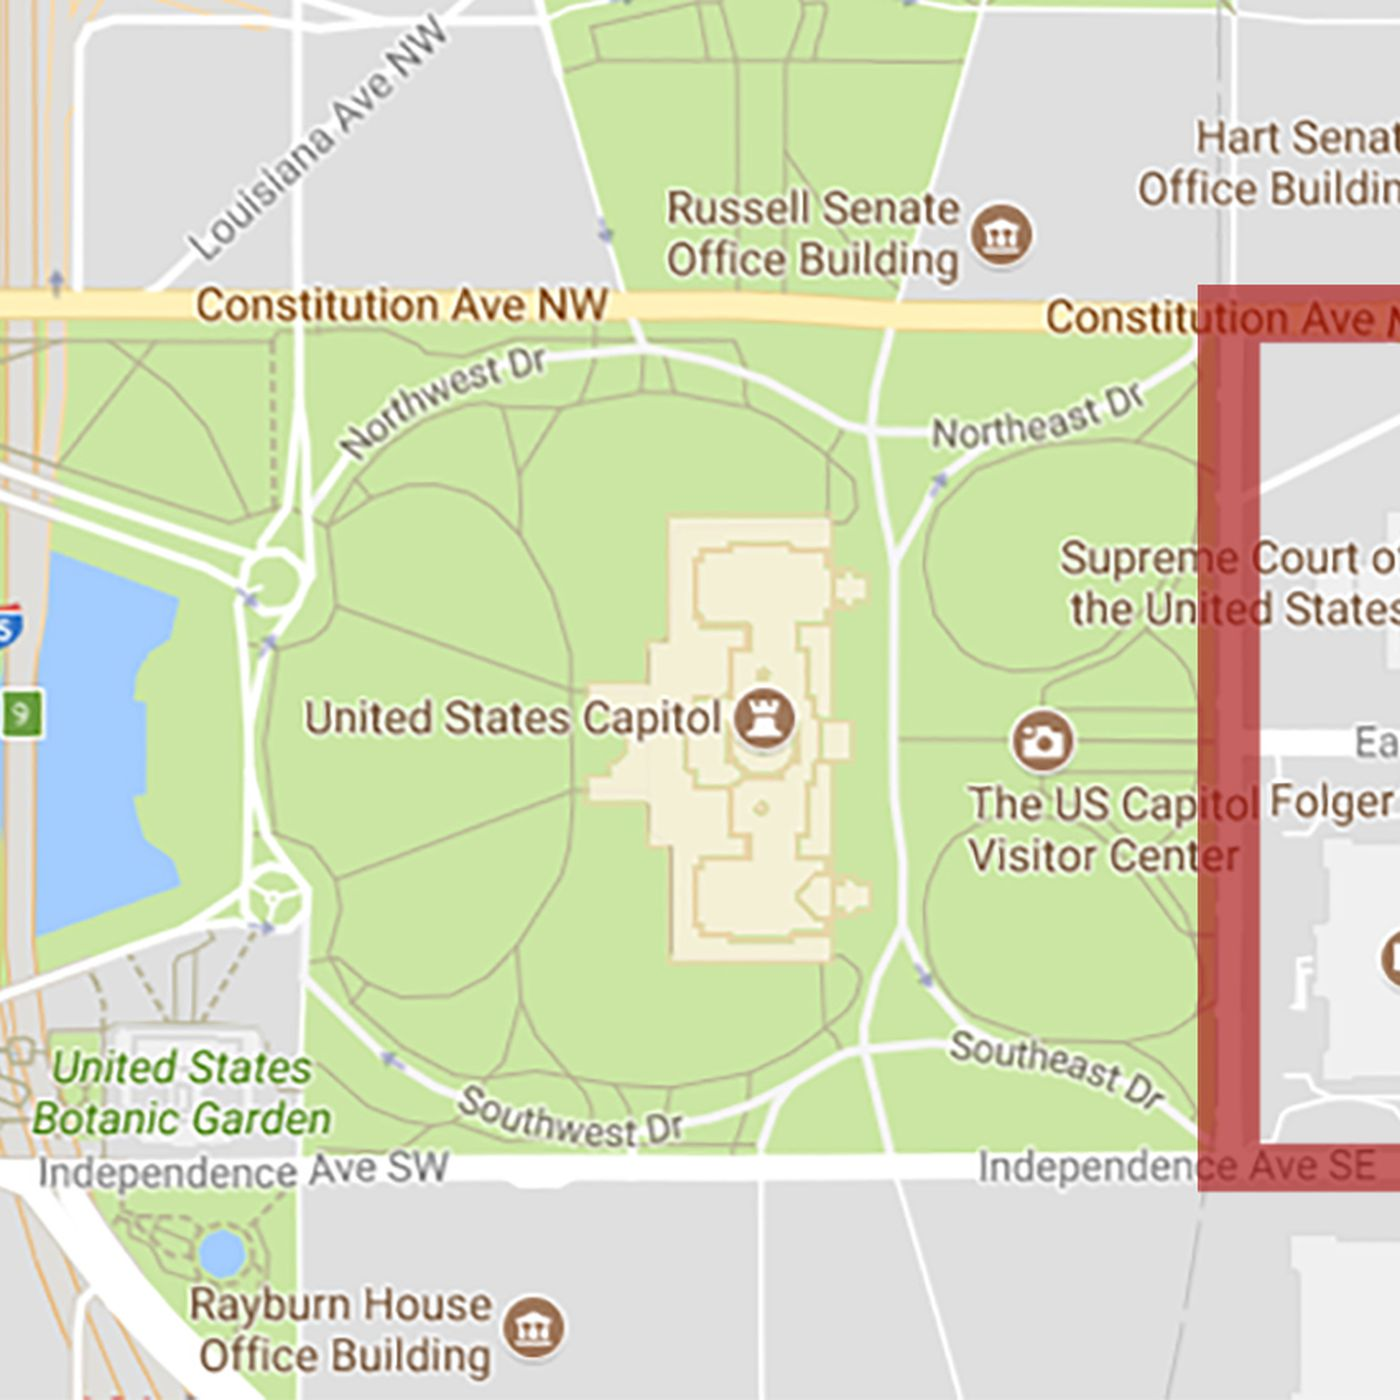 Labor Day Concert Road Closure Map Revealed Curbed Dc - Map-of-the-us-capitol-building